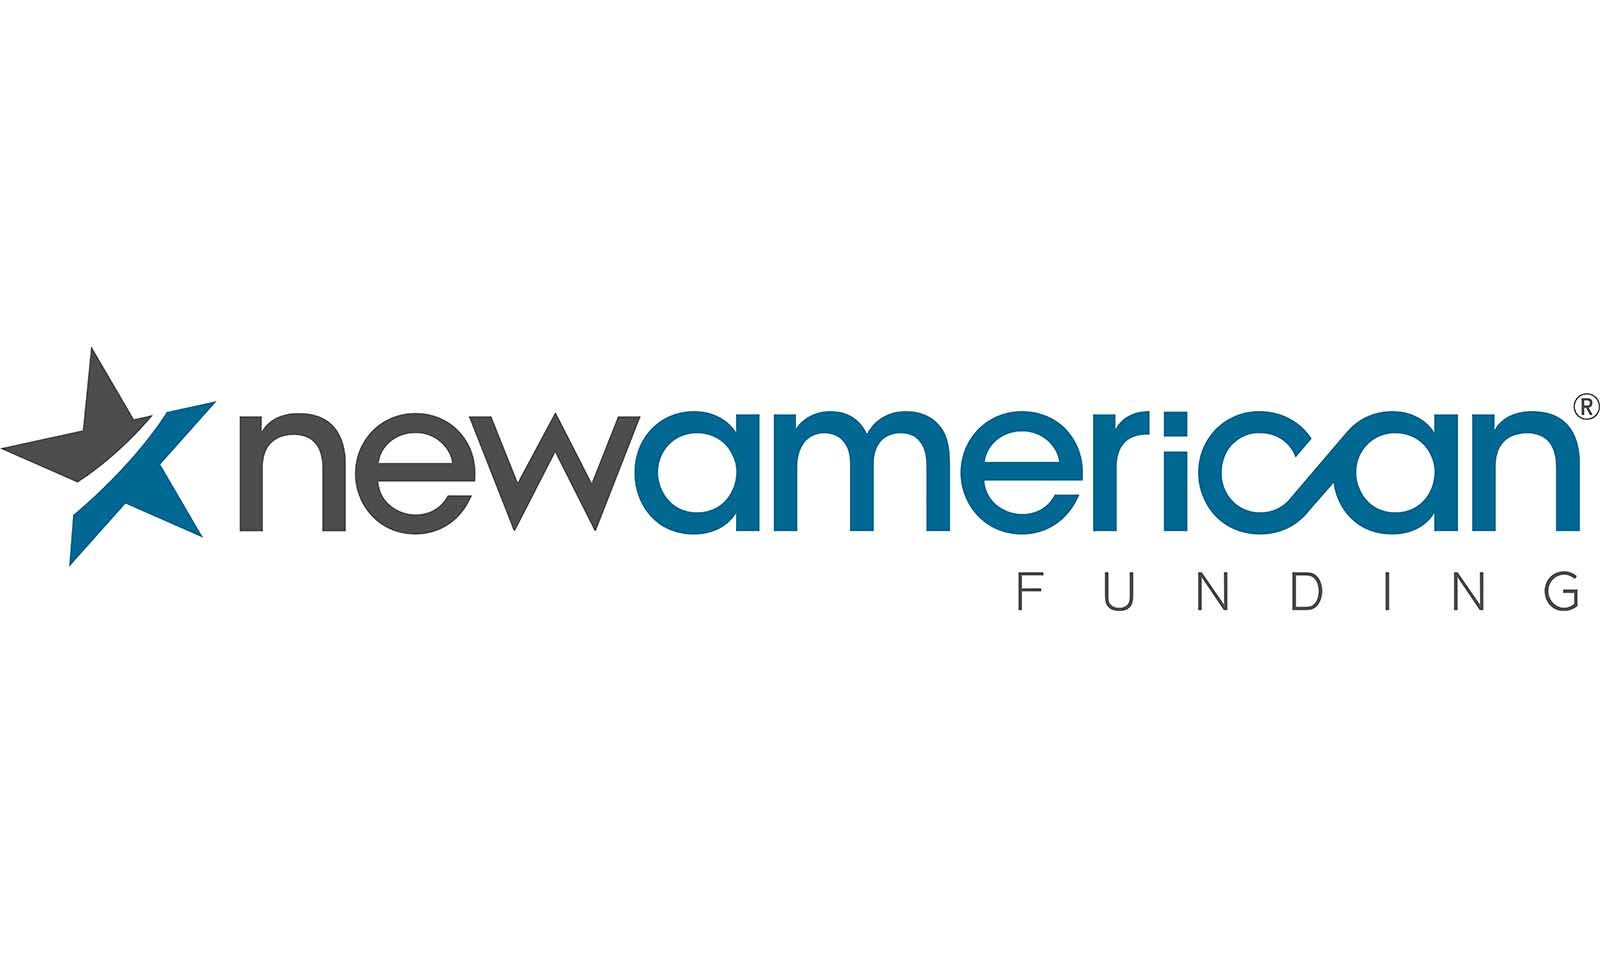 New American Funding review. Find out the pros and cons of New American Funding before you apply.